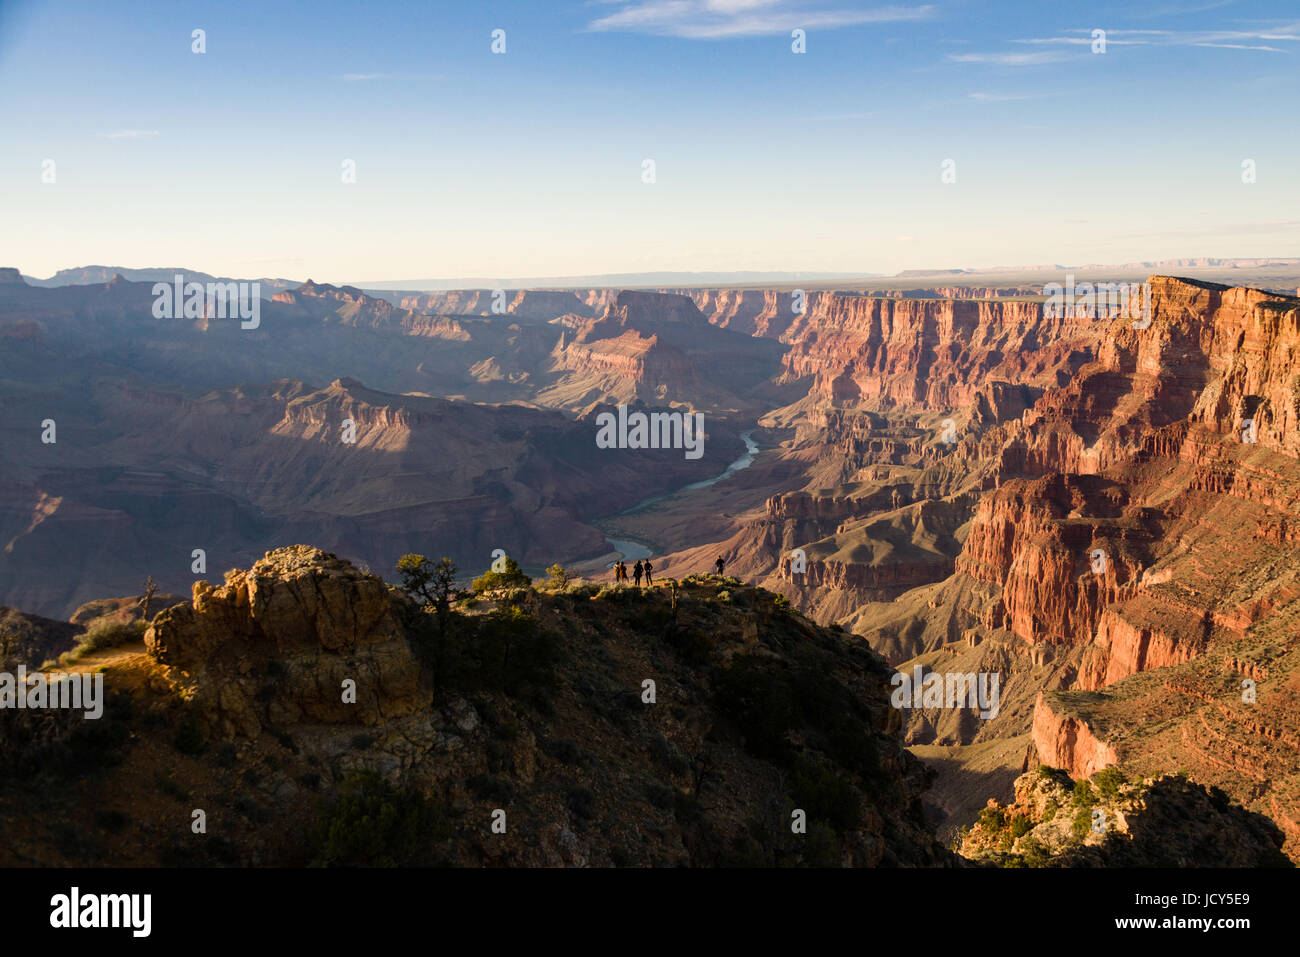 Colorado River from South Rim, Grand Canyon Stock Photo